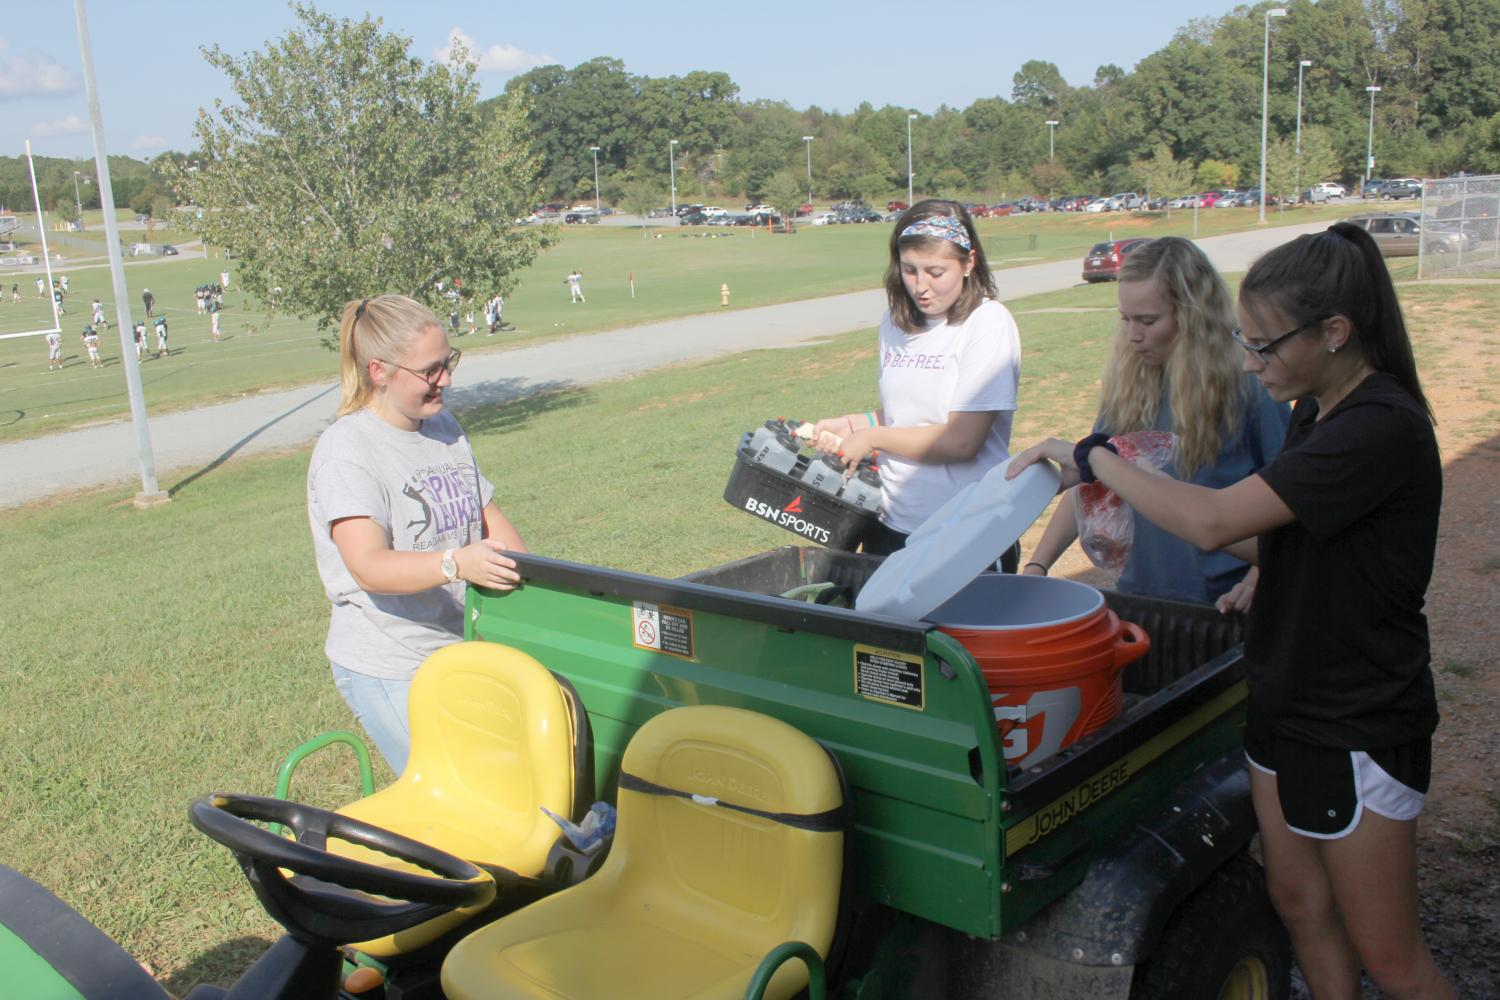 (From left to right) Senior Alyssa Taylor, juniors Hannah Bryan and Sam Dembosky, and sophomore Michelle Salus load the Gator with materials for football practice. Salus is the only returning trainer from last year.